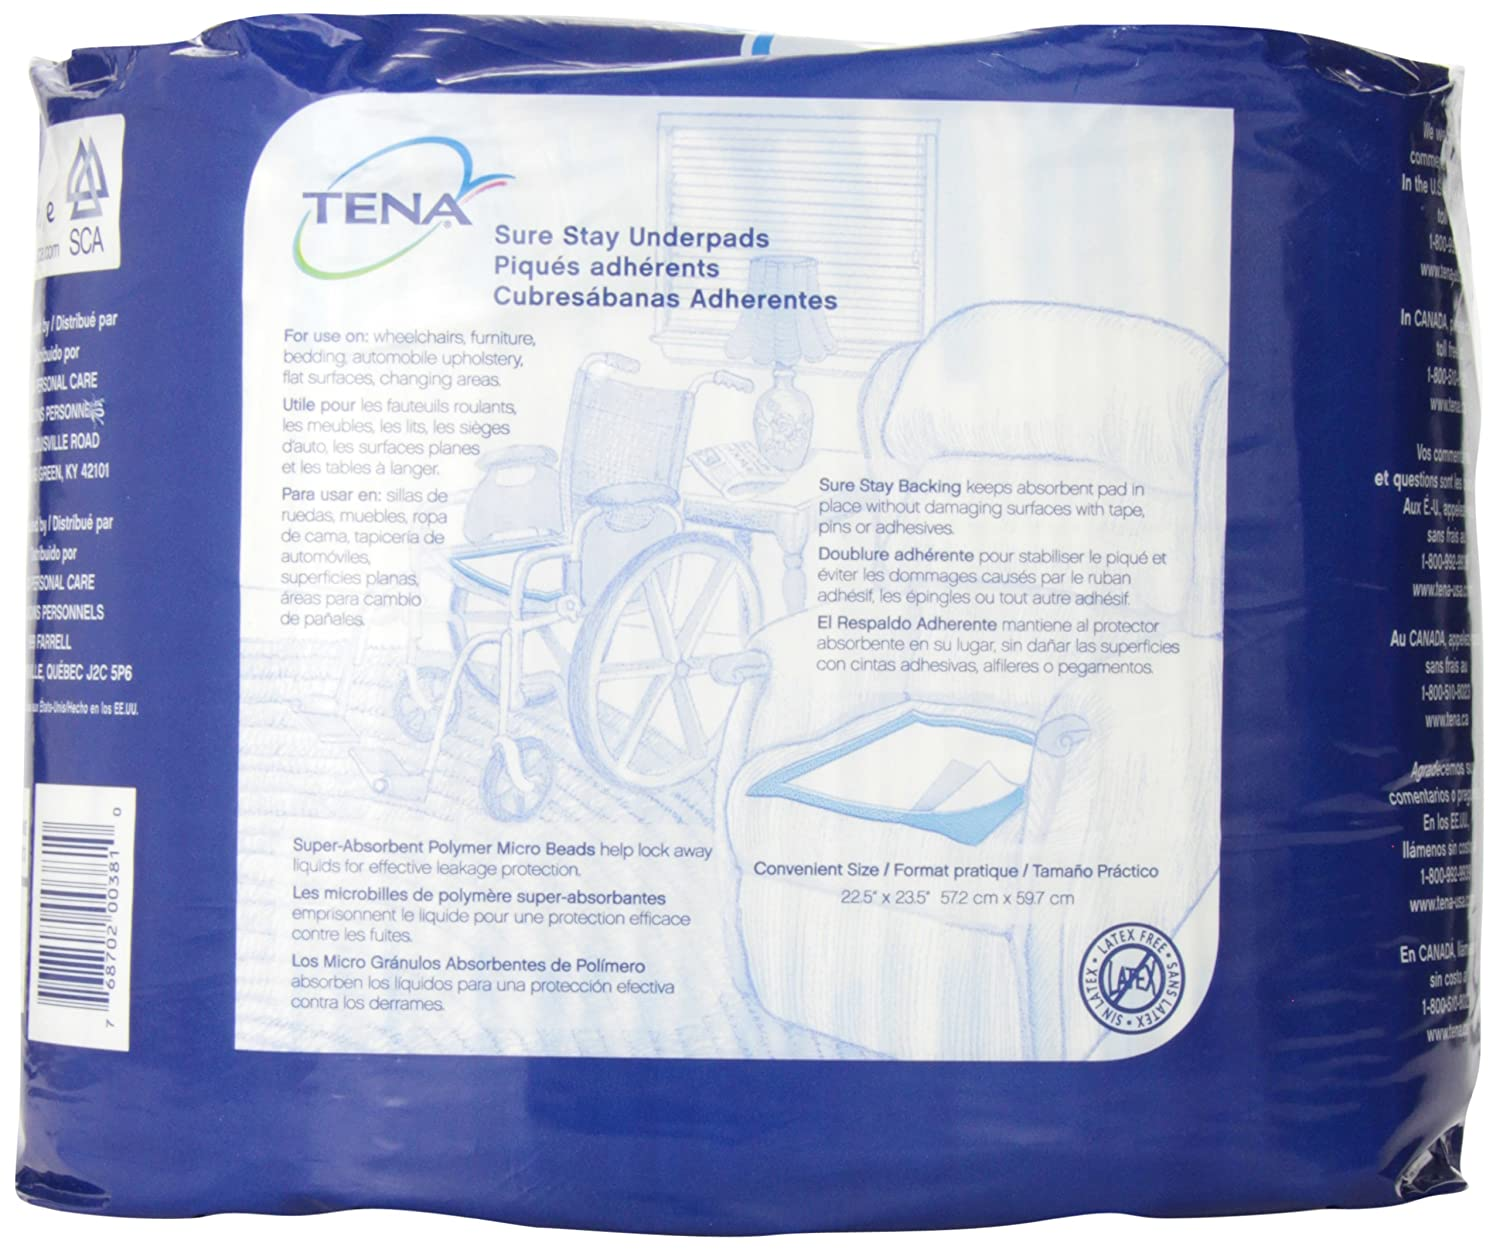 Amazon.com: Tena Sure Stay Underpads, 22.5